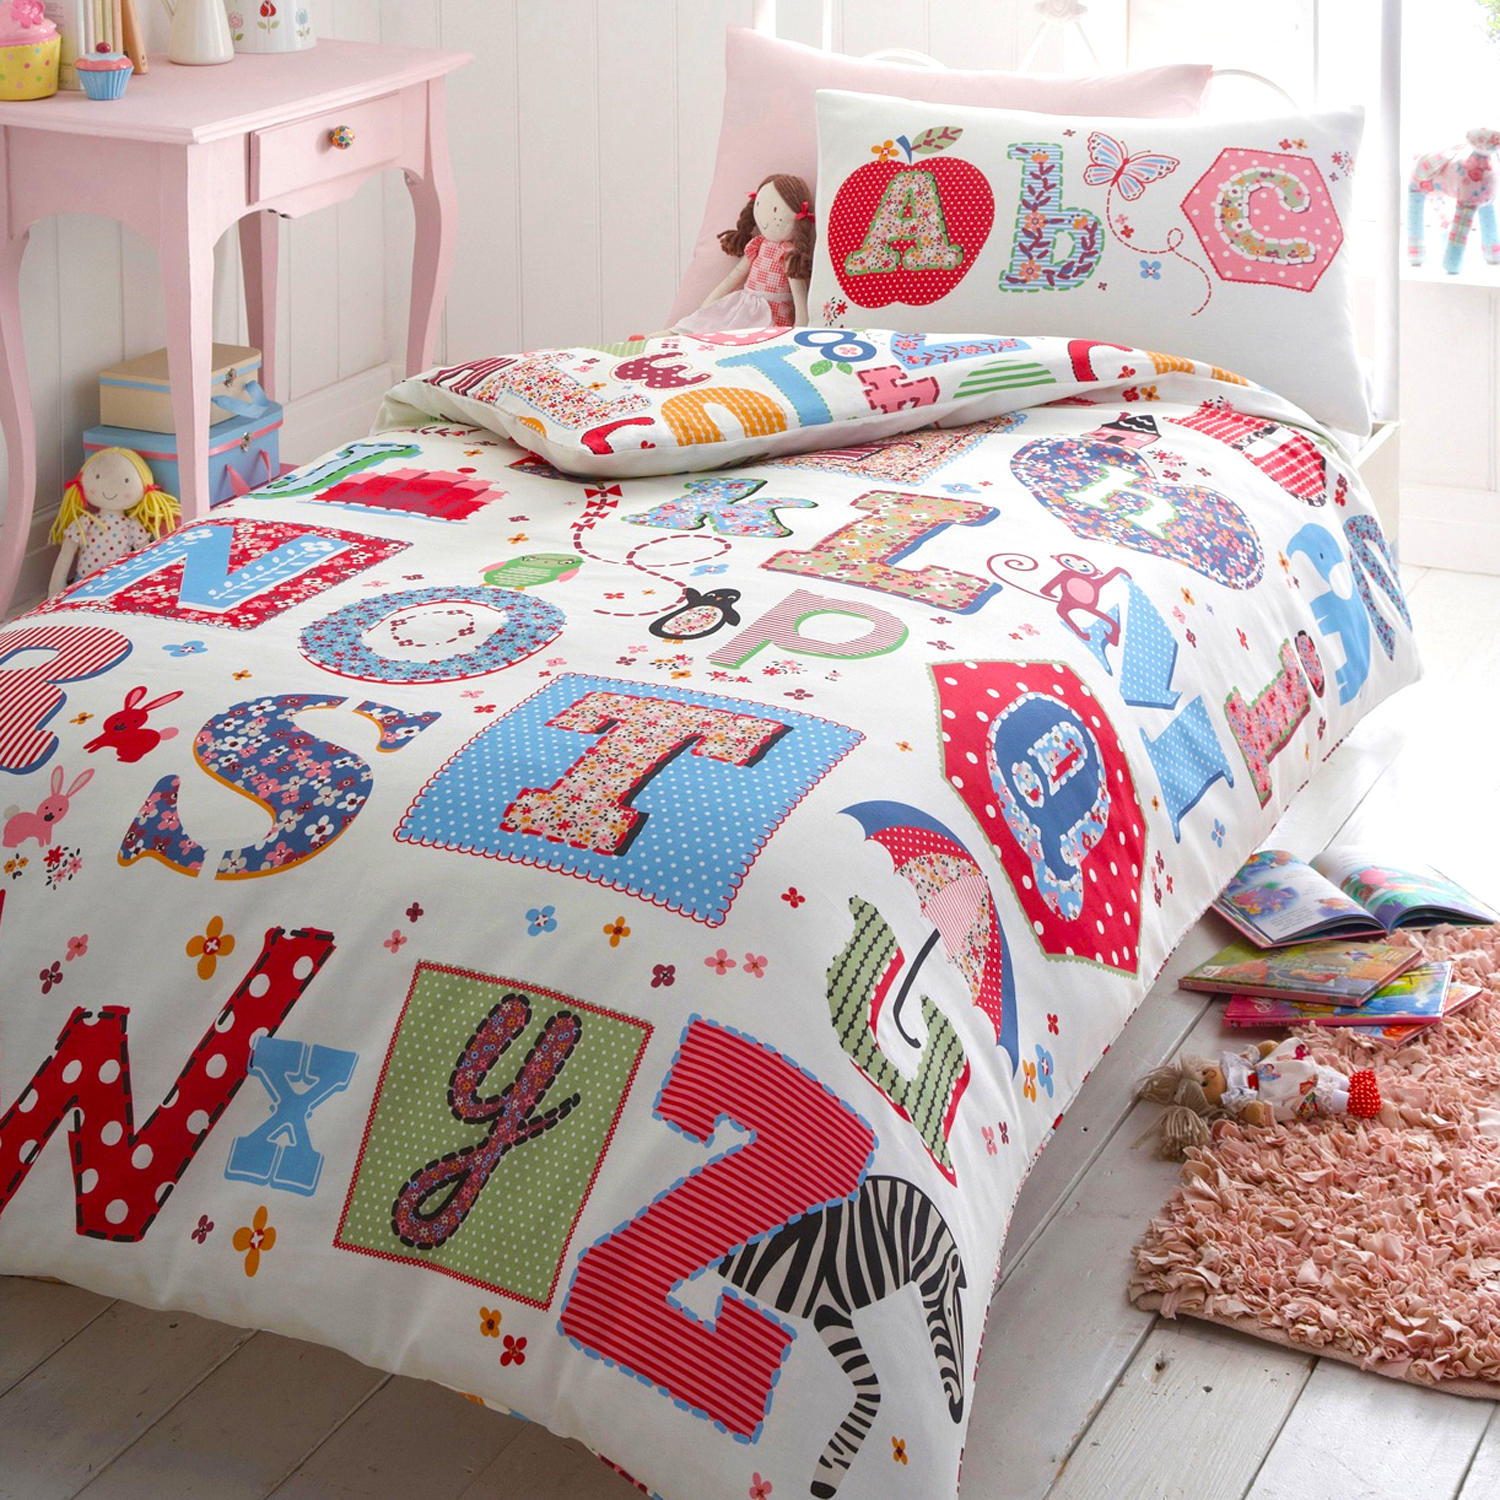 kids-bedding_Blue-Zoo-Debenhams-by-Sarah-Papworth.png